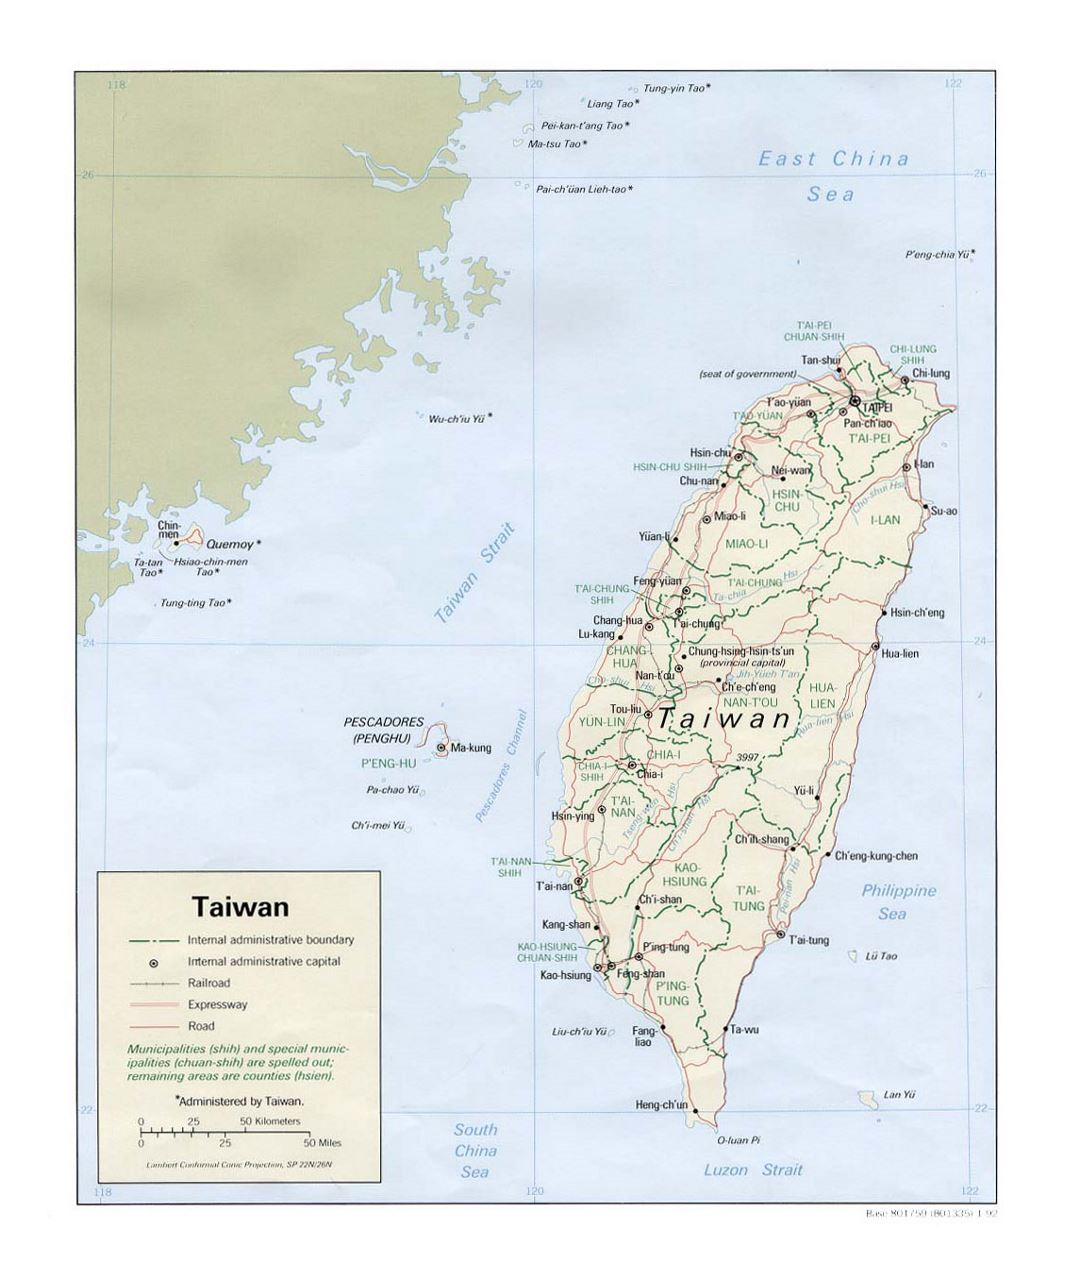 Detailed political and administrative map of Taiwan with roads, railroads and major cities - 1992